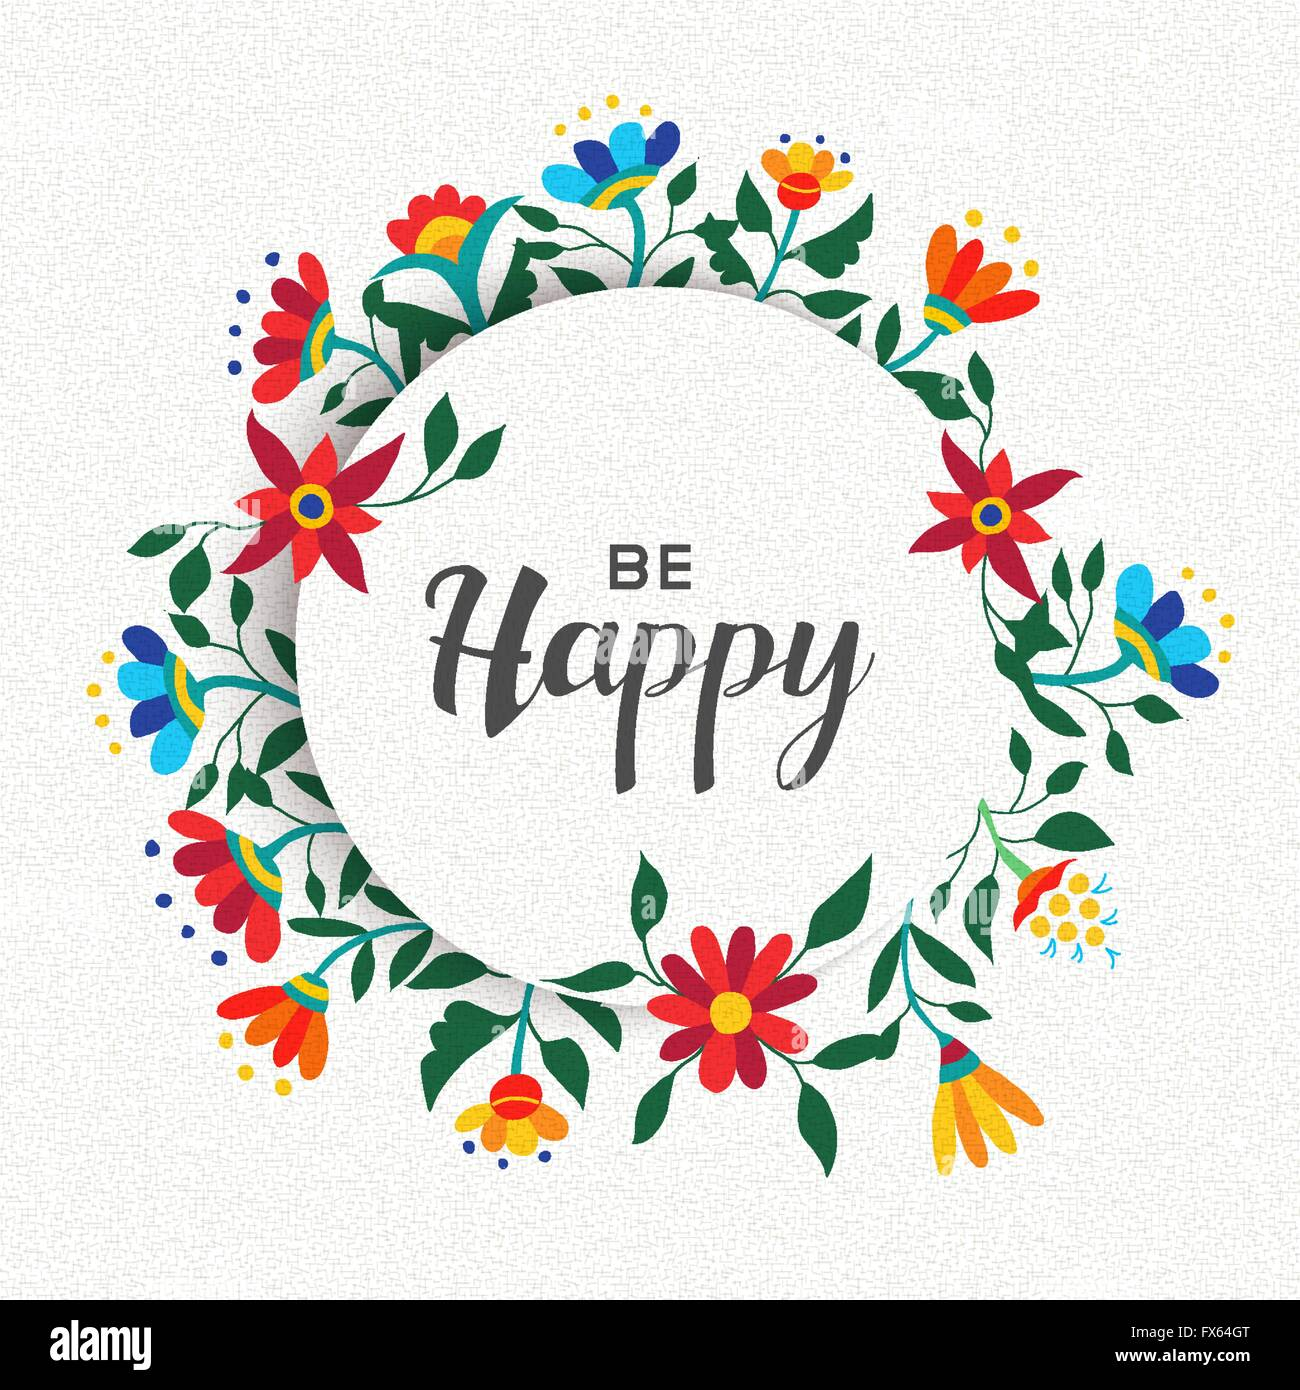 Quote poster design inspiration - Be Happy Quote Poster Design Positive Inspiration Message With Spring Time Flower Wreath Decoration Eps10 Vector